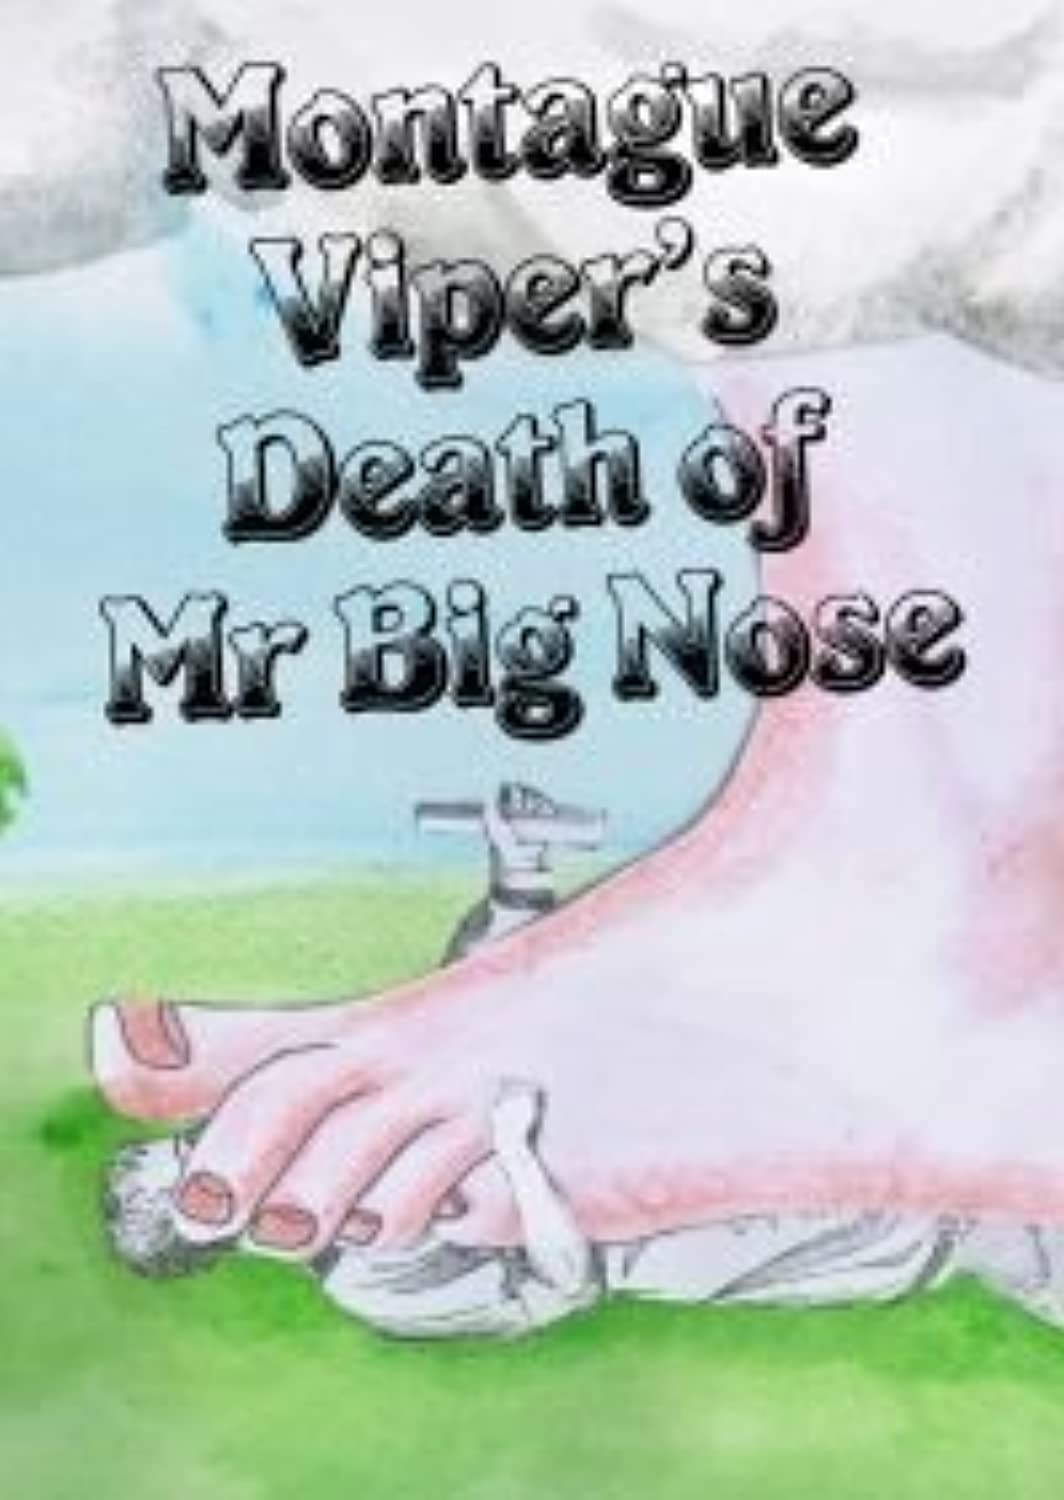 Montegue Viper's  Death of Mr. Big Nose  murder mystery game for 12 players